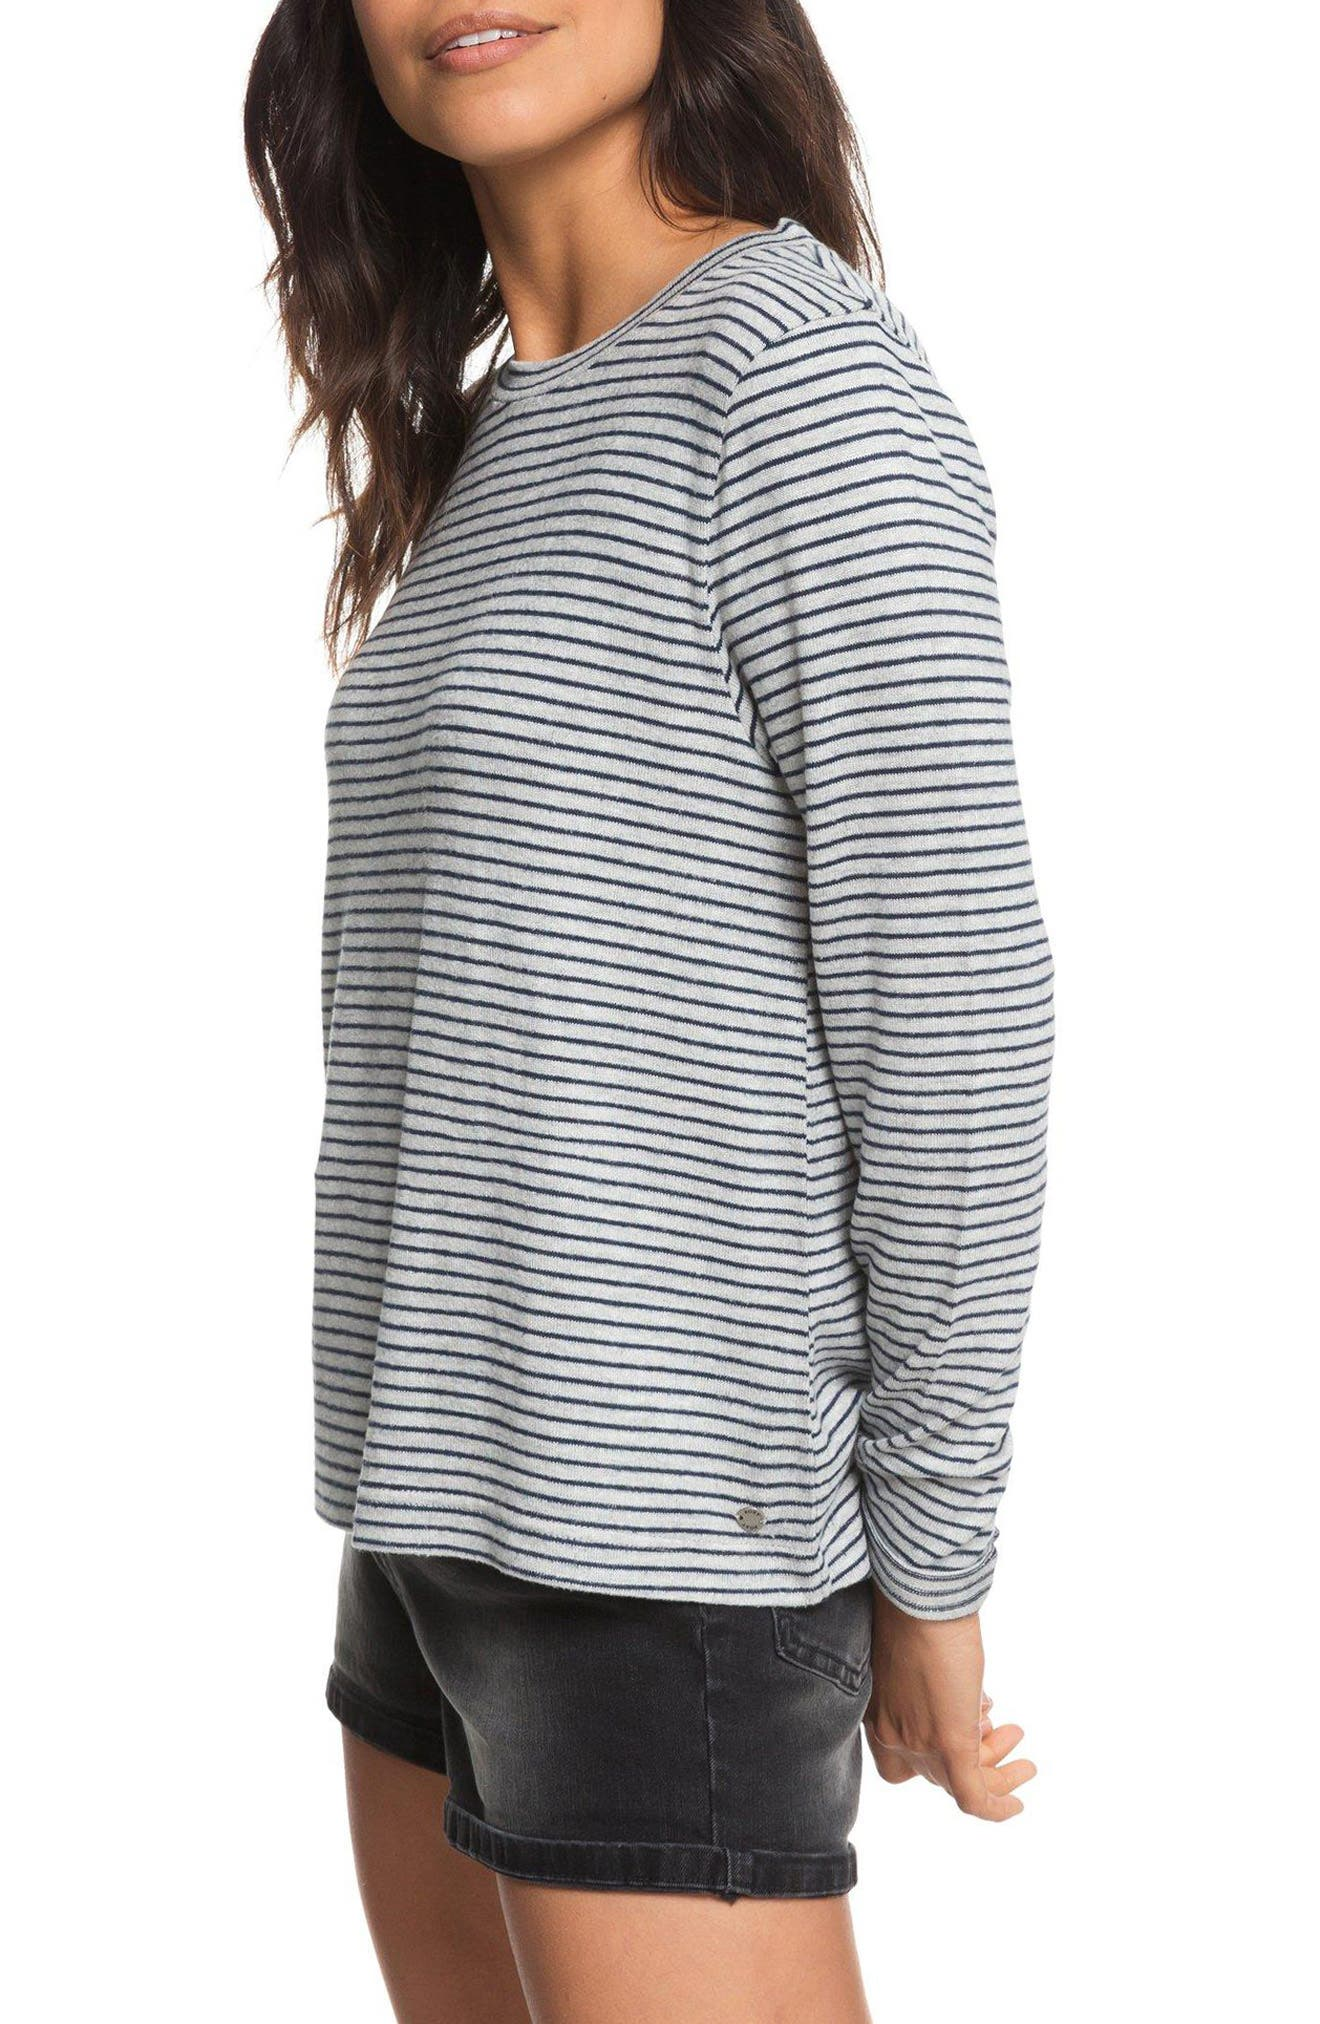 Chasing You Stripe Knit Top,                             Alternate thumbnail 3, color,                             HERITAGE HEATHER THIN STRIPES